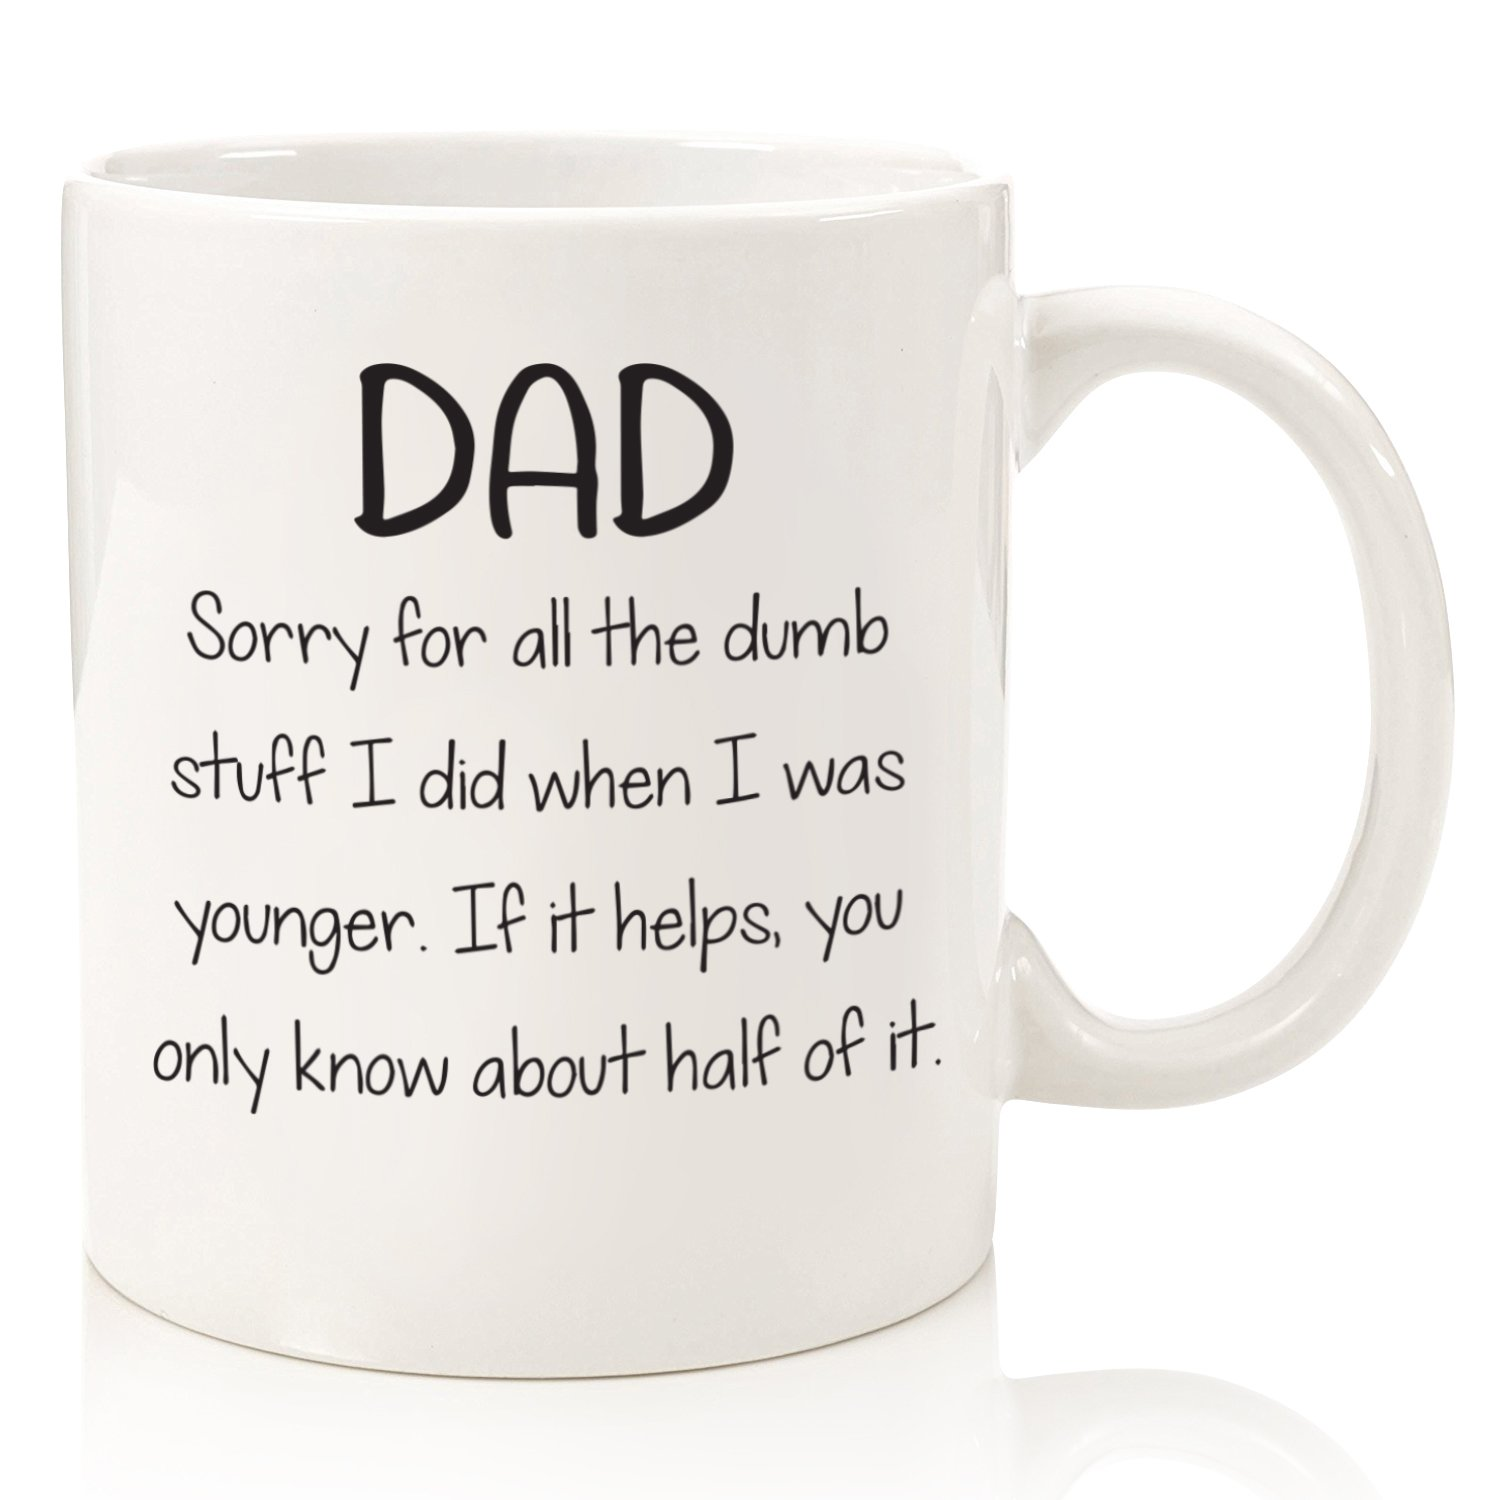 Sorry For The Dumb Stuff I Did Funny Dad Mug - Best Fathers Day Gifts For Dads, Men From Daughter or Son - Unique Birthday Gift Idea For Him - Cool Present For a Father - Fun Novelty Coffee Cup - 11oz